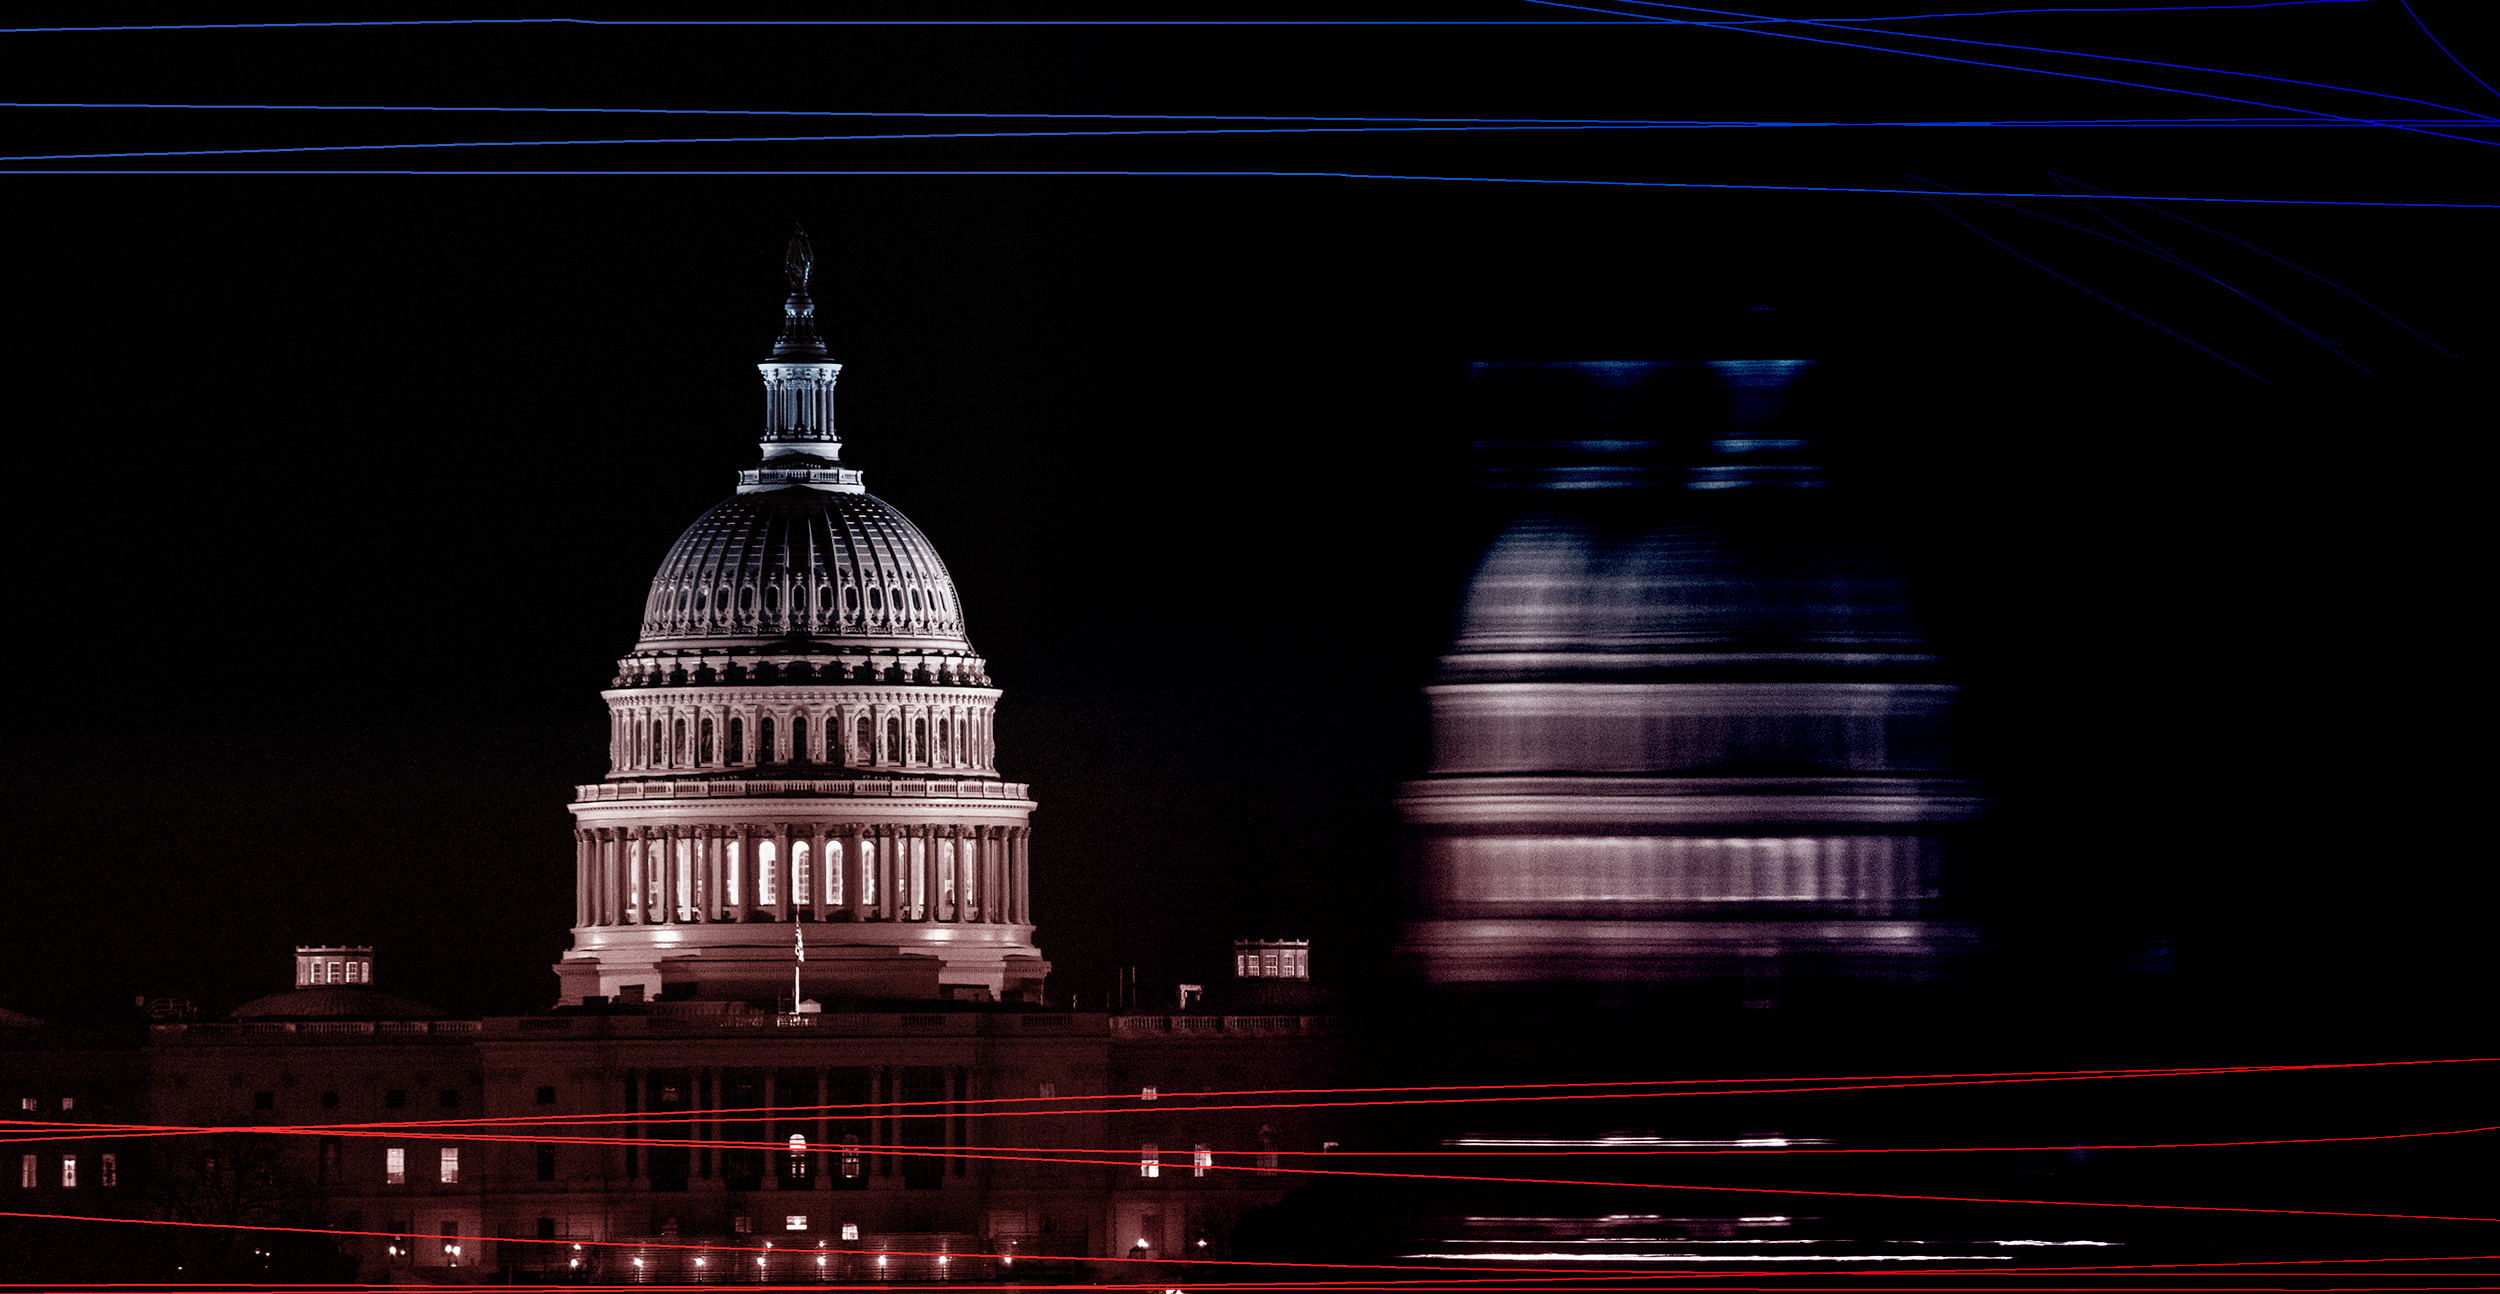 'A train wreck': Congress faces a daunting September as deadlines pile up